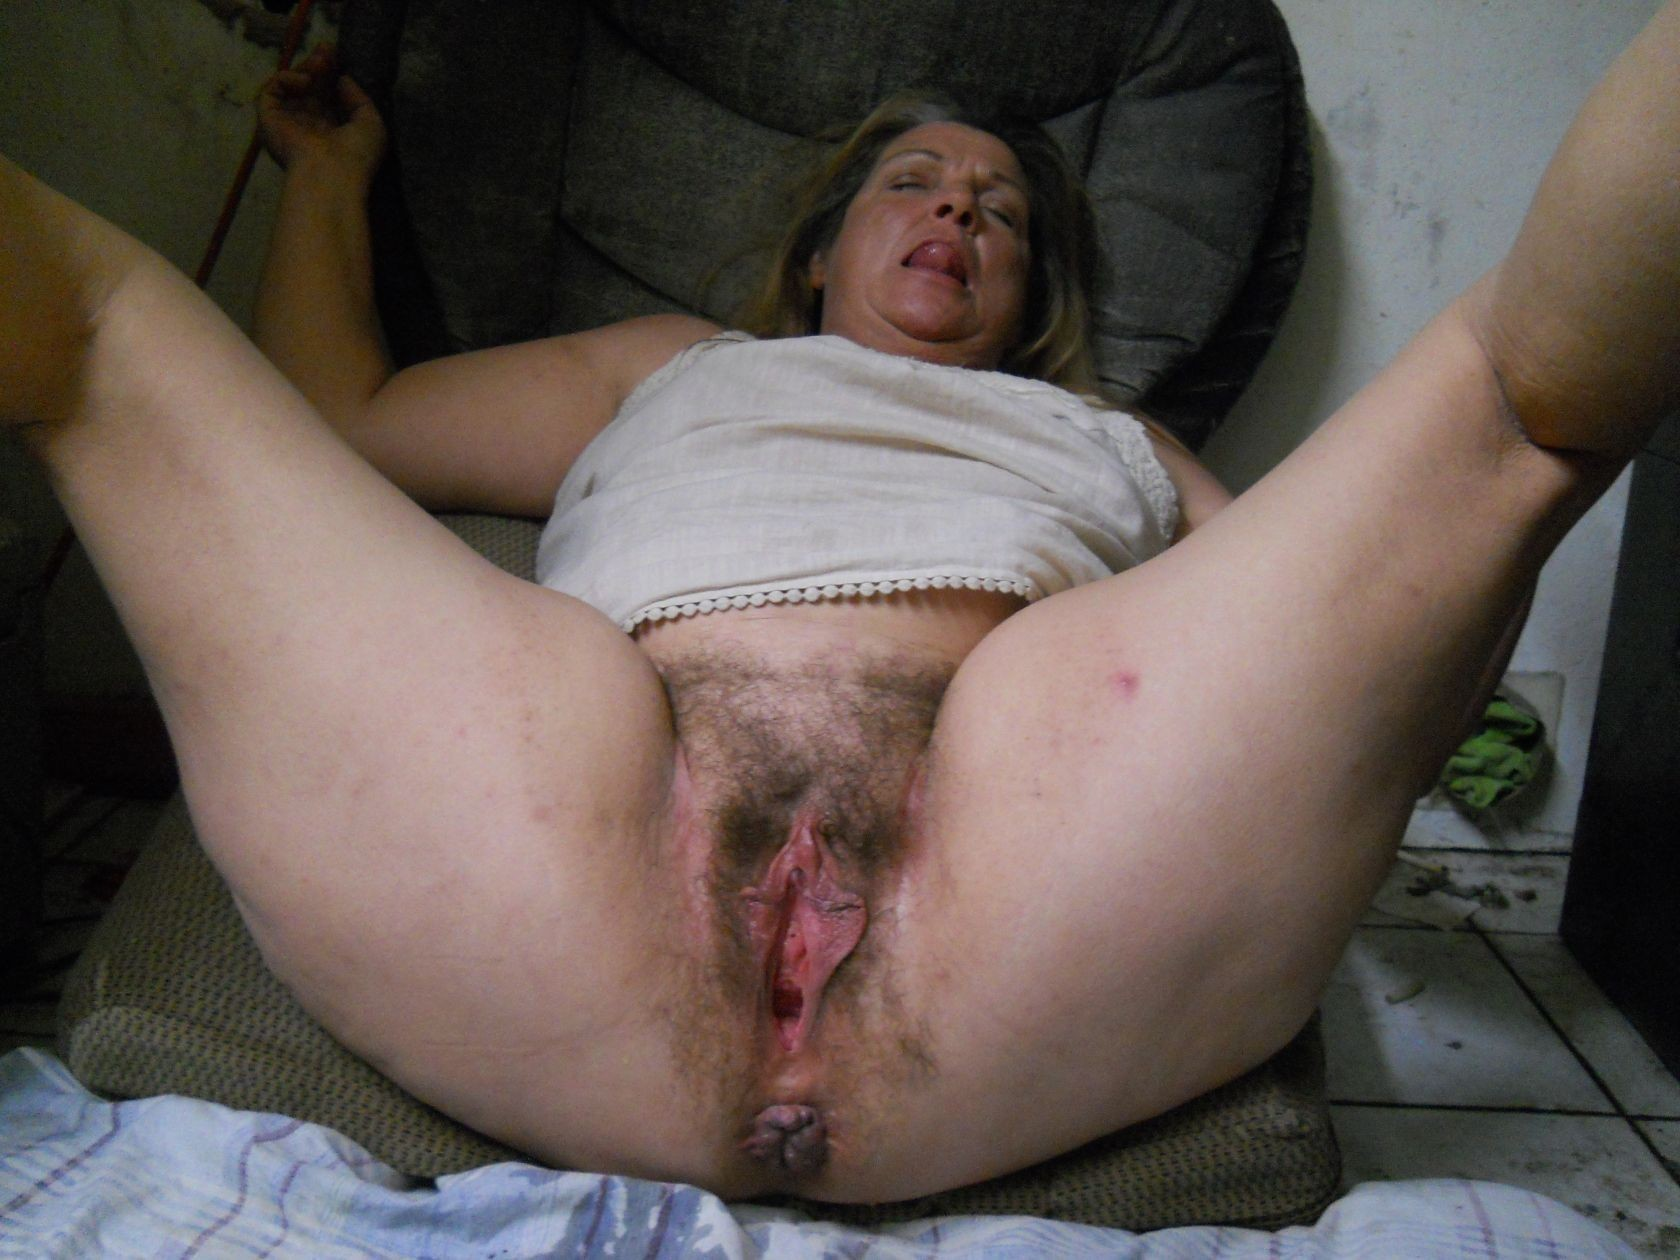 Remarkable amateur mature hairy pussy ass will